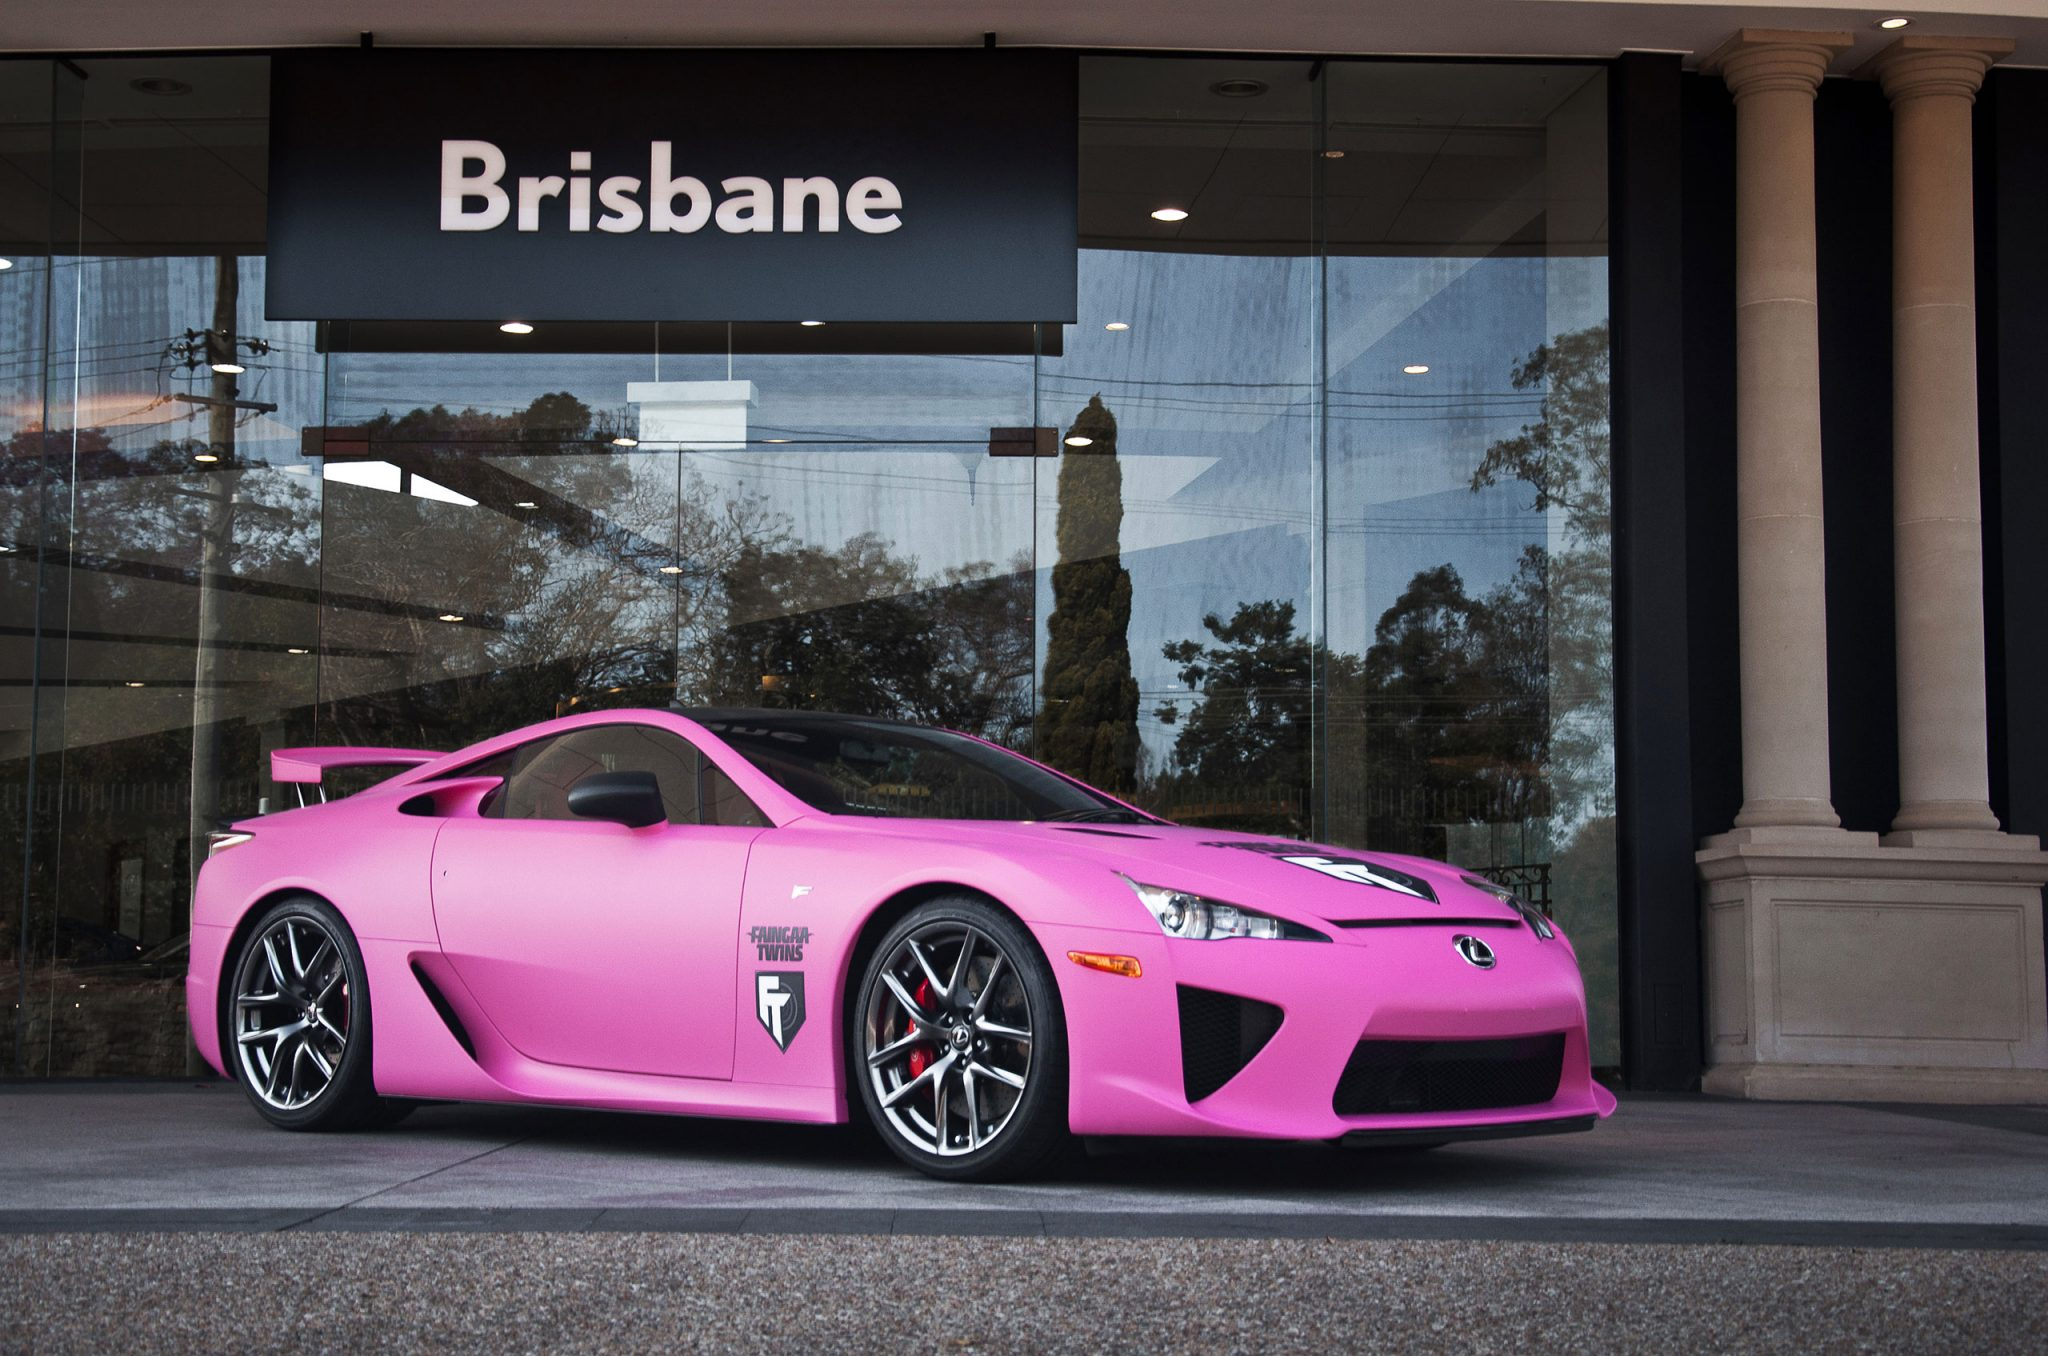 Lexus Dealership Phoenix >> World's First Matte Pink Lexus LFA - ForceGT.com